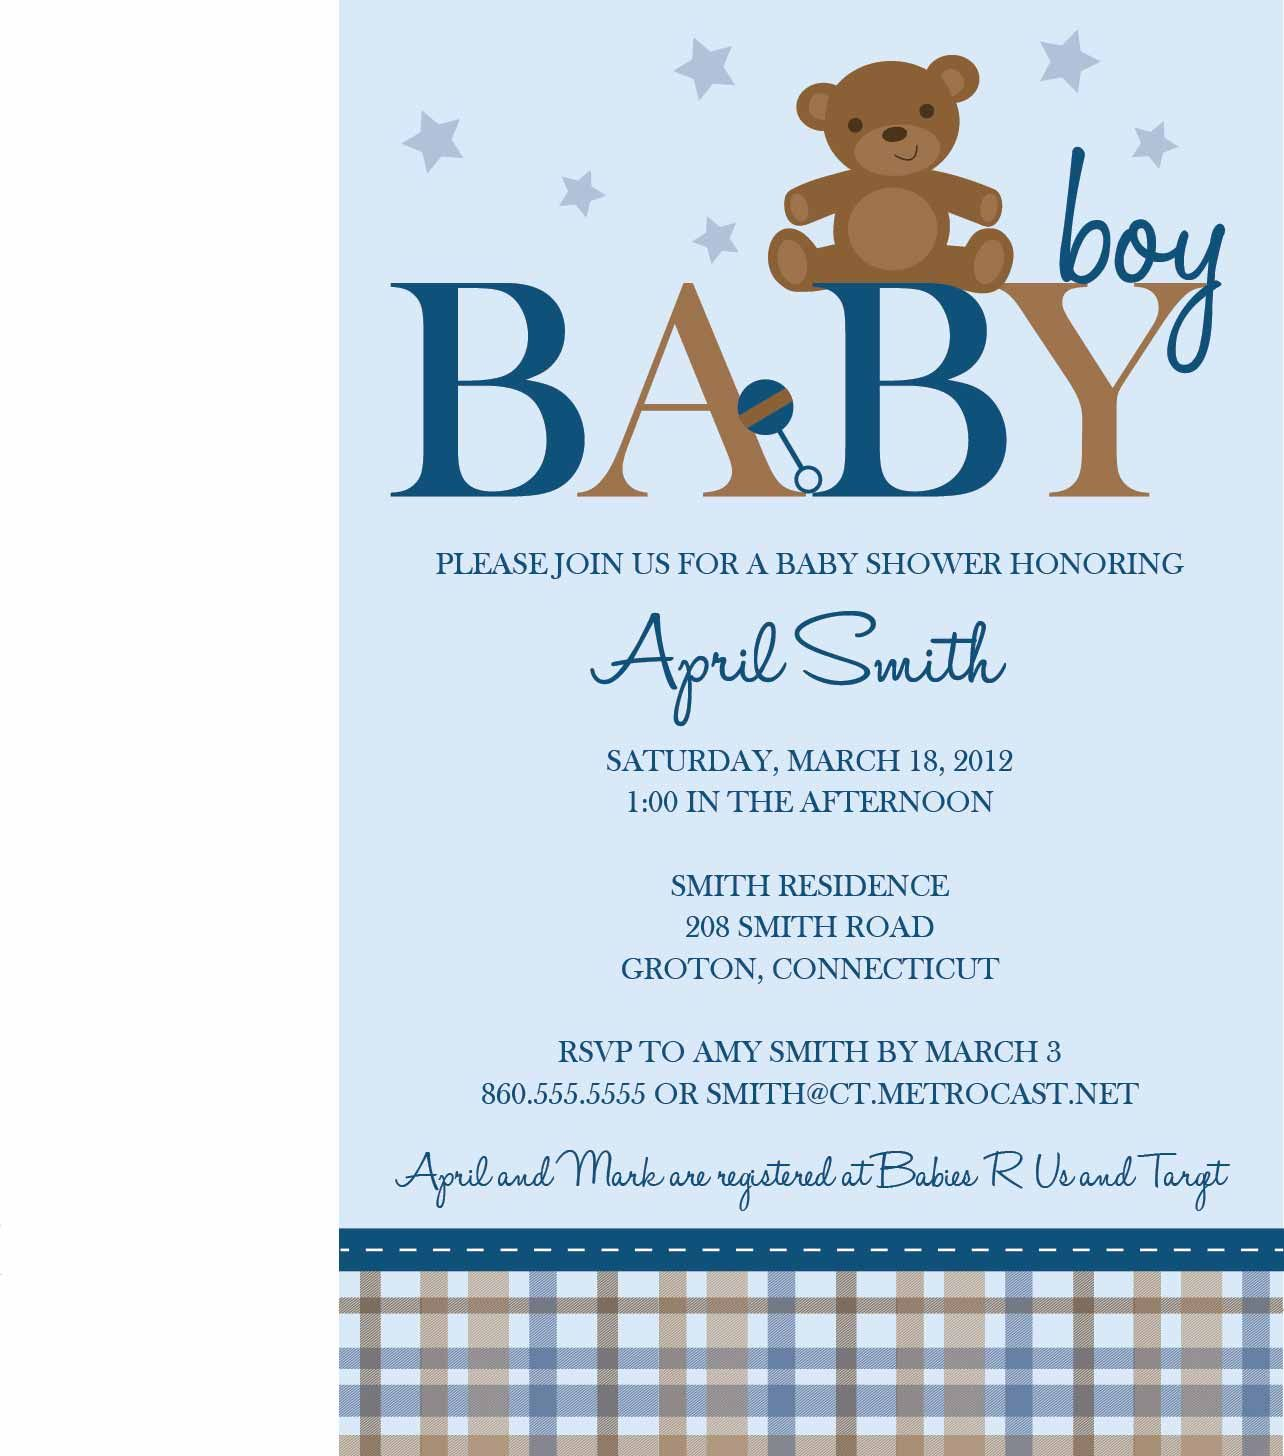 Teddy bear baby shower templates baby shower invitations for boys teddy bear baby shower templates baby shower invitations for boys template filmwisefo